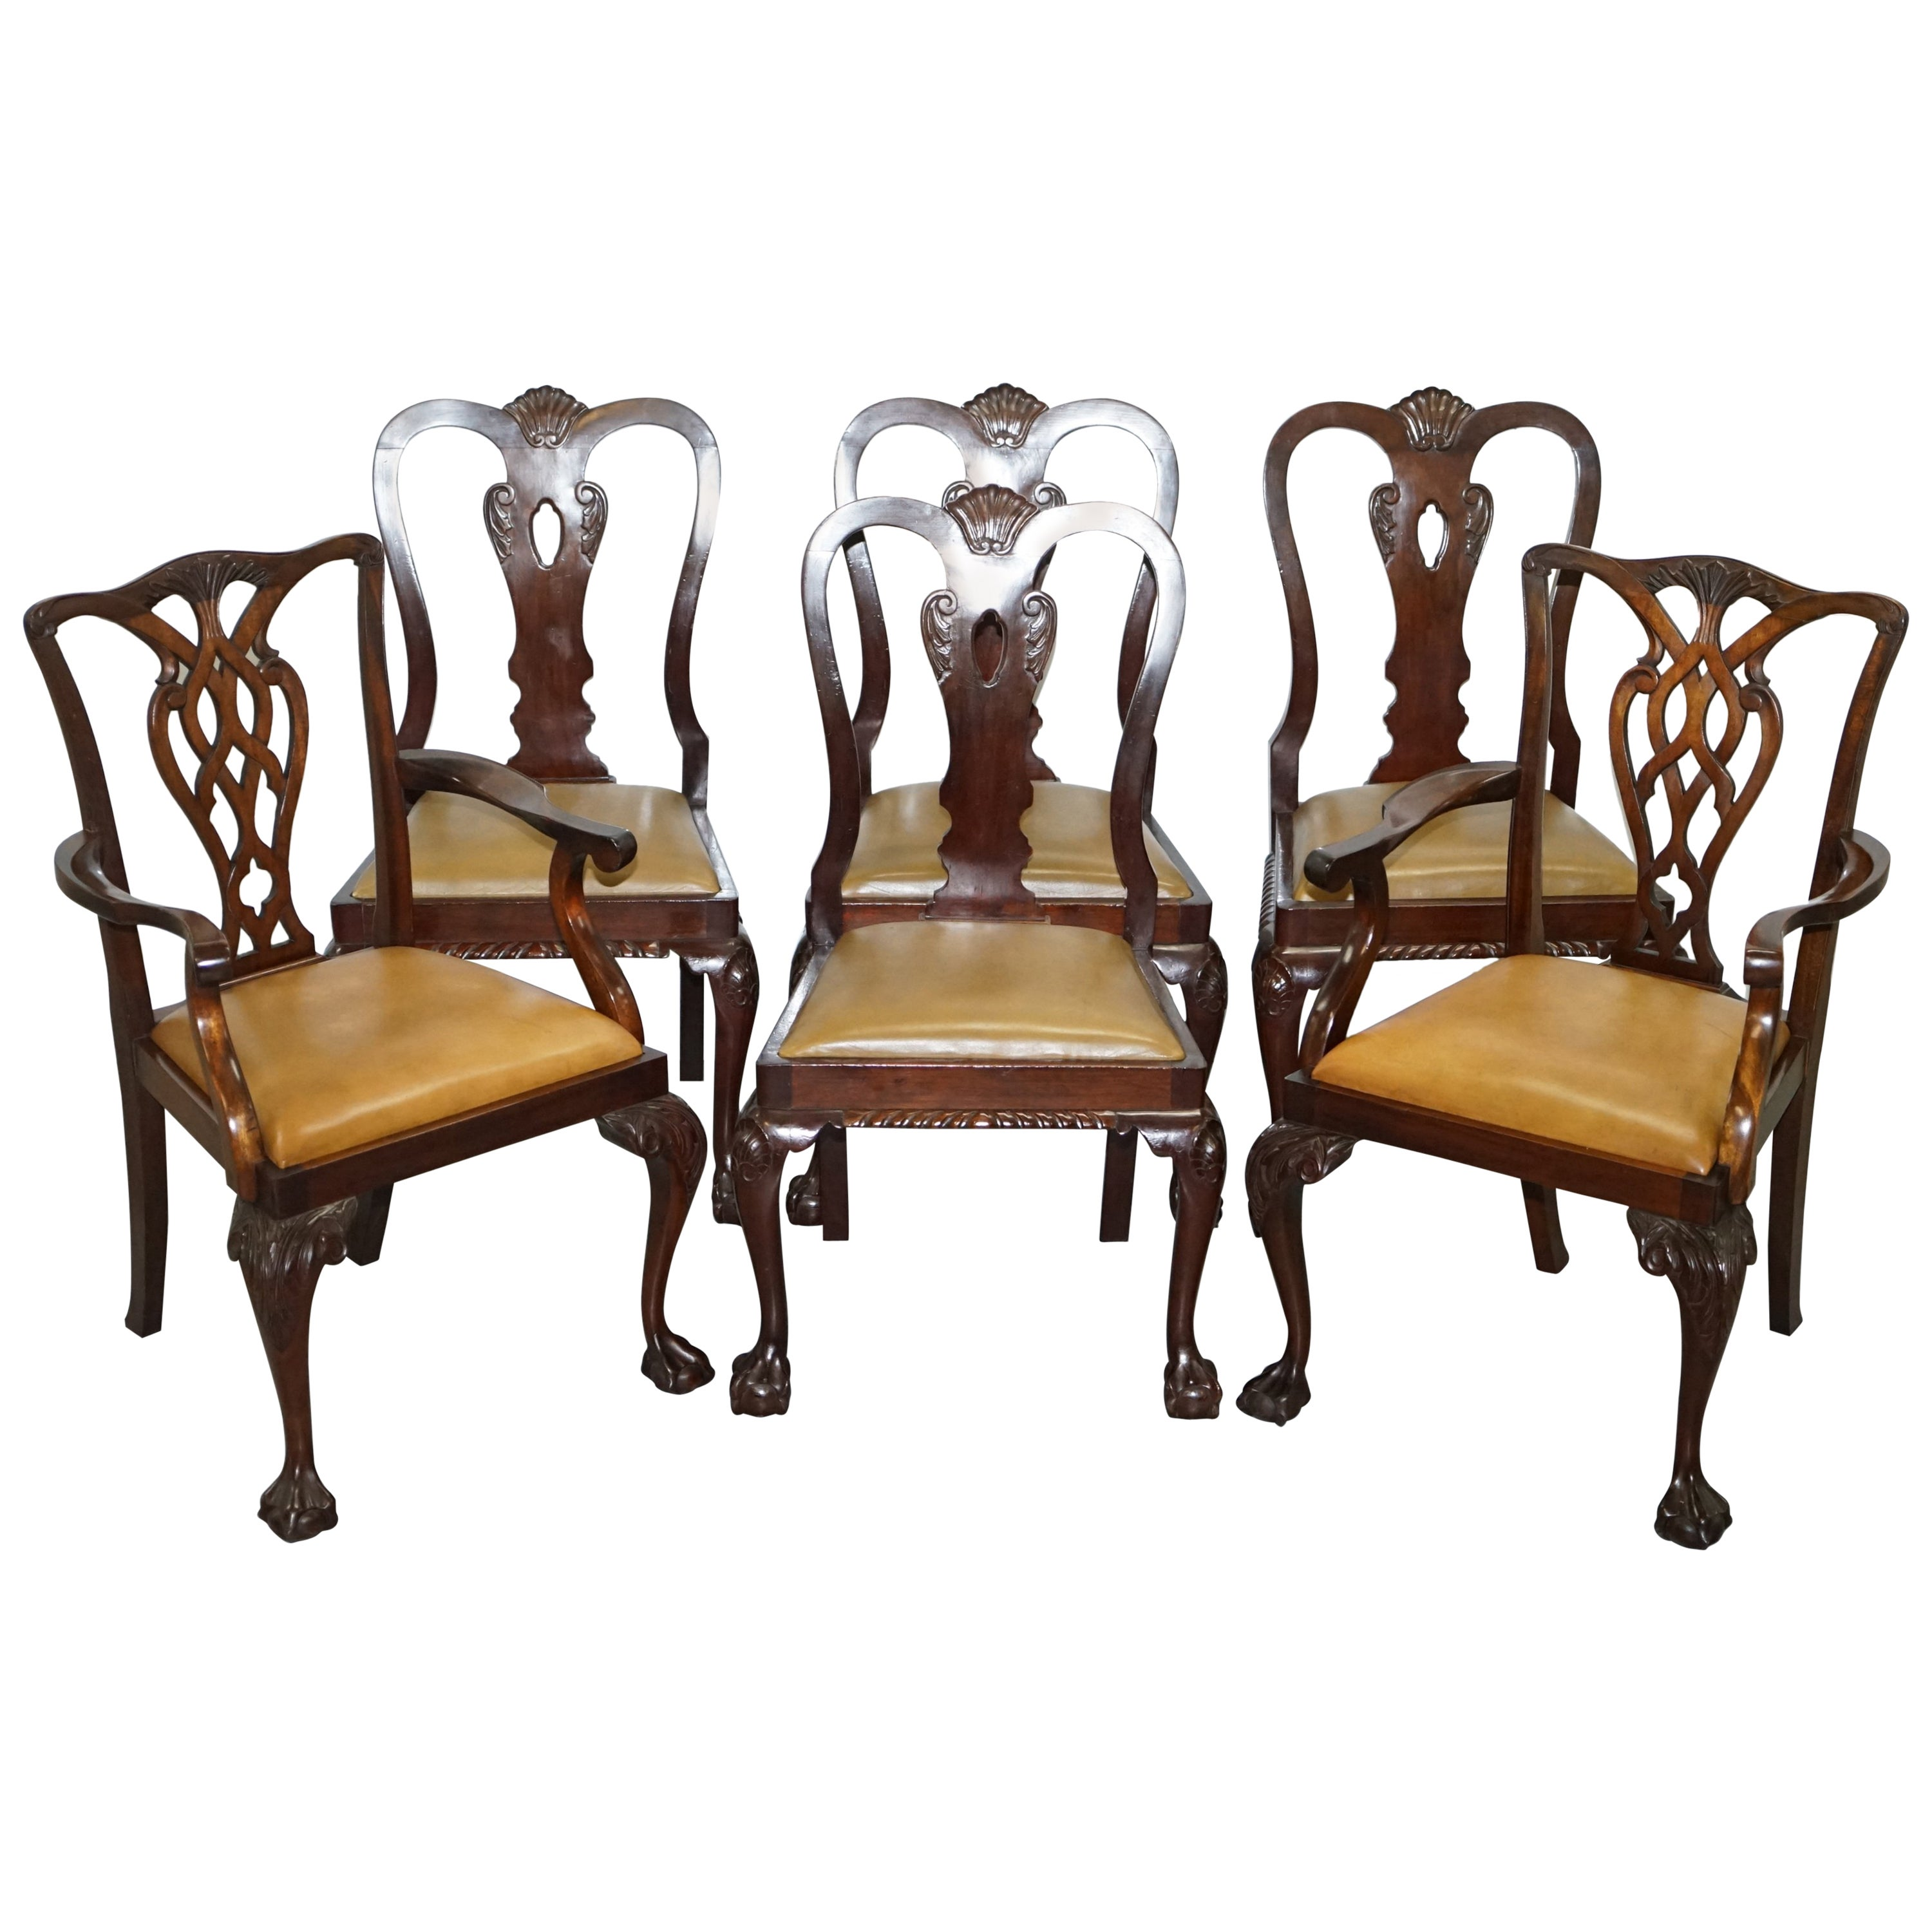 af4bec133daa5 Set of 6 Claw and Ball Mahogany Thomas Chippendale Style Antique Dining  Chairs at 1stdibs